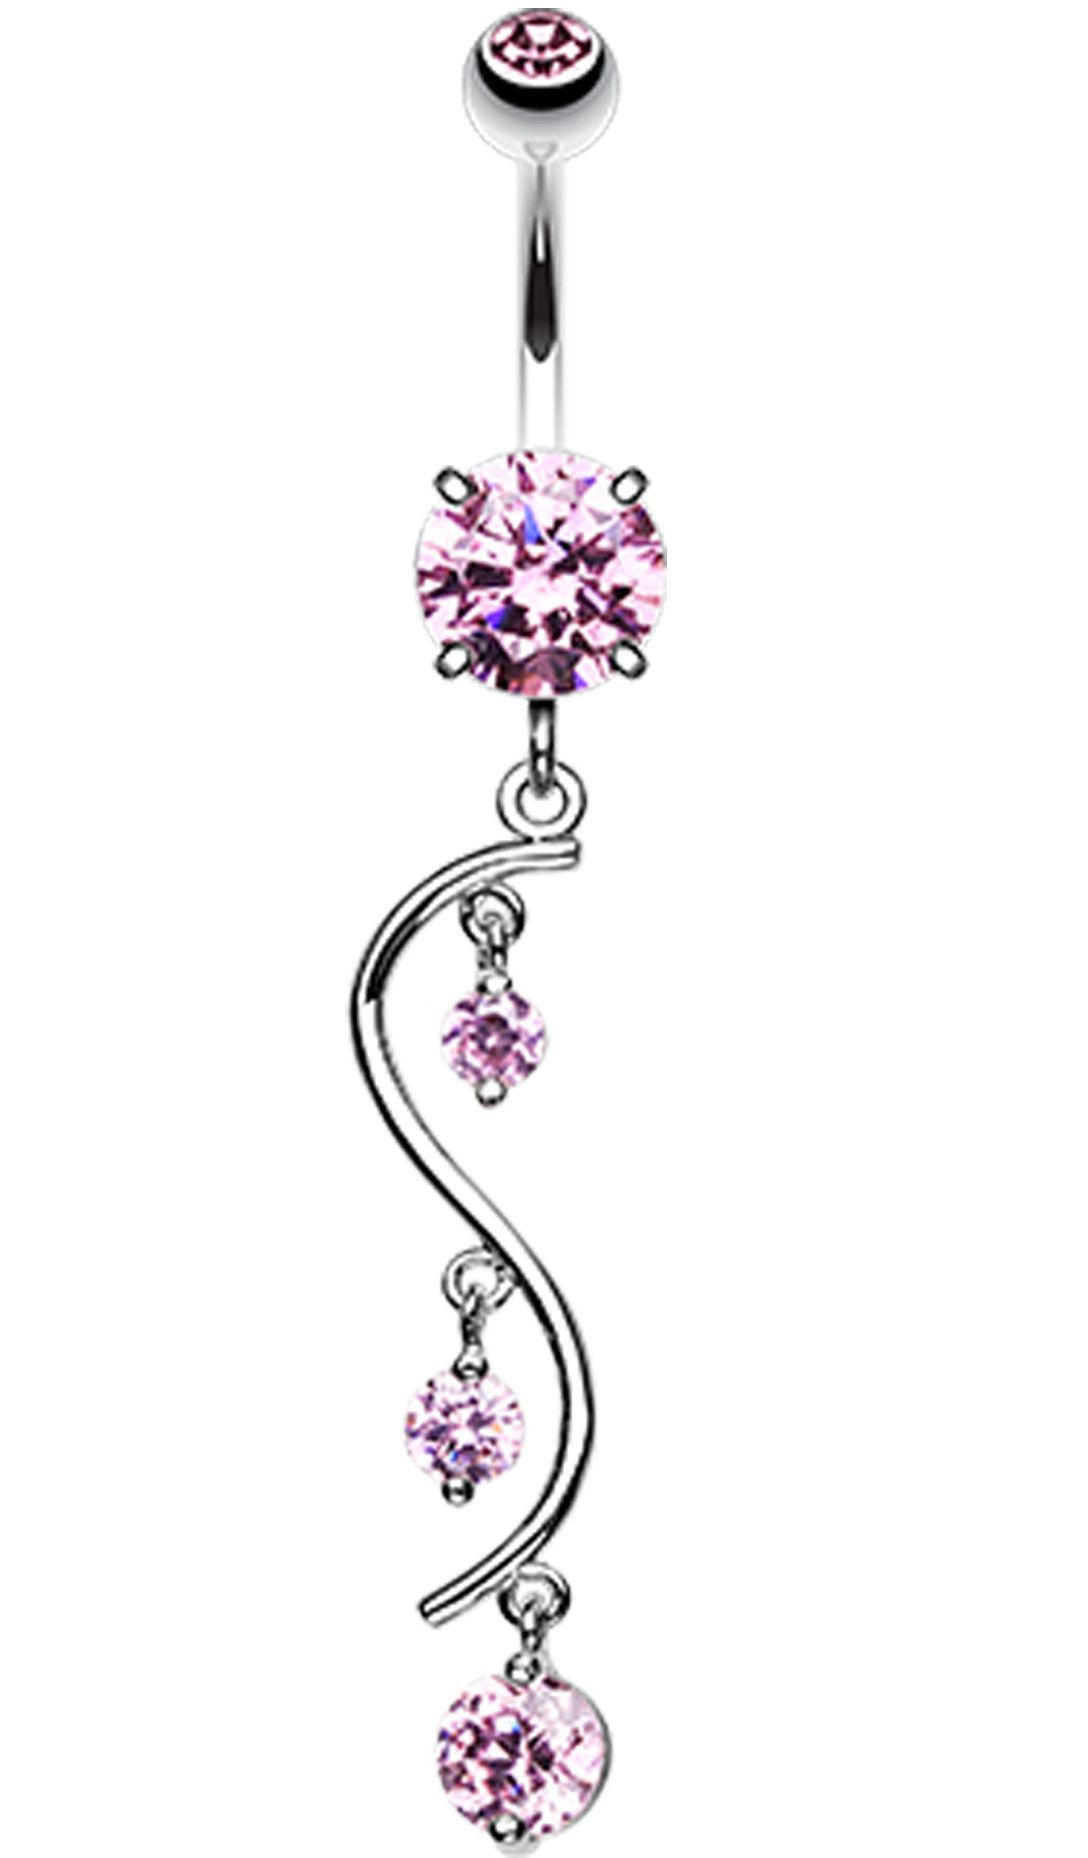 Flower Sparkle Belly Button Ring 14 GA 1.6mm - Sold Individually